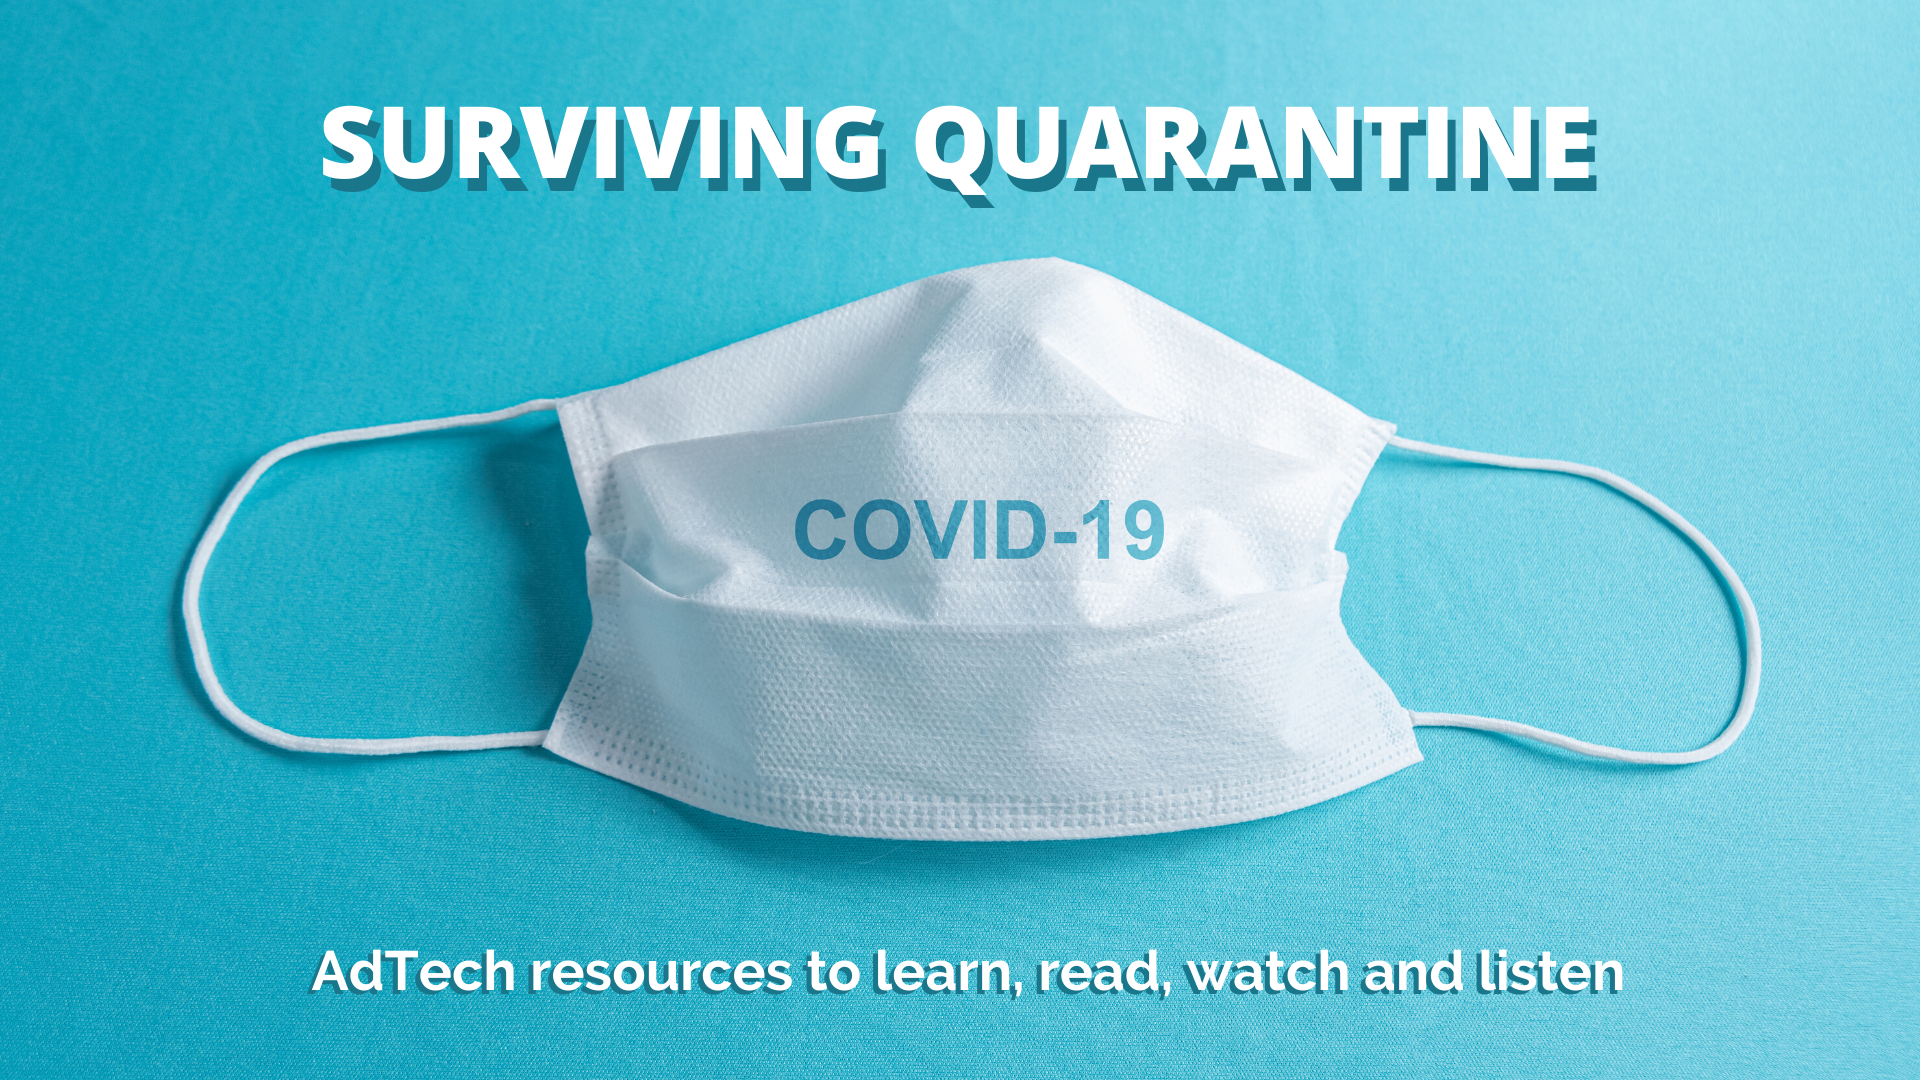 SURVIVING QUARANTINE: Useful AdTech resources to read, study, watch and listen